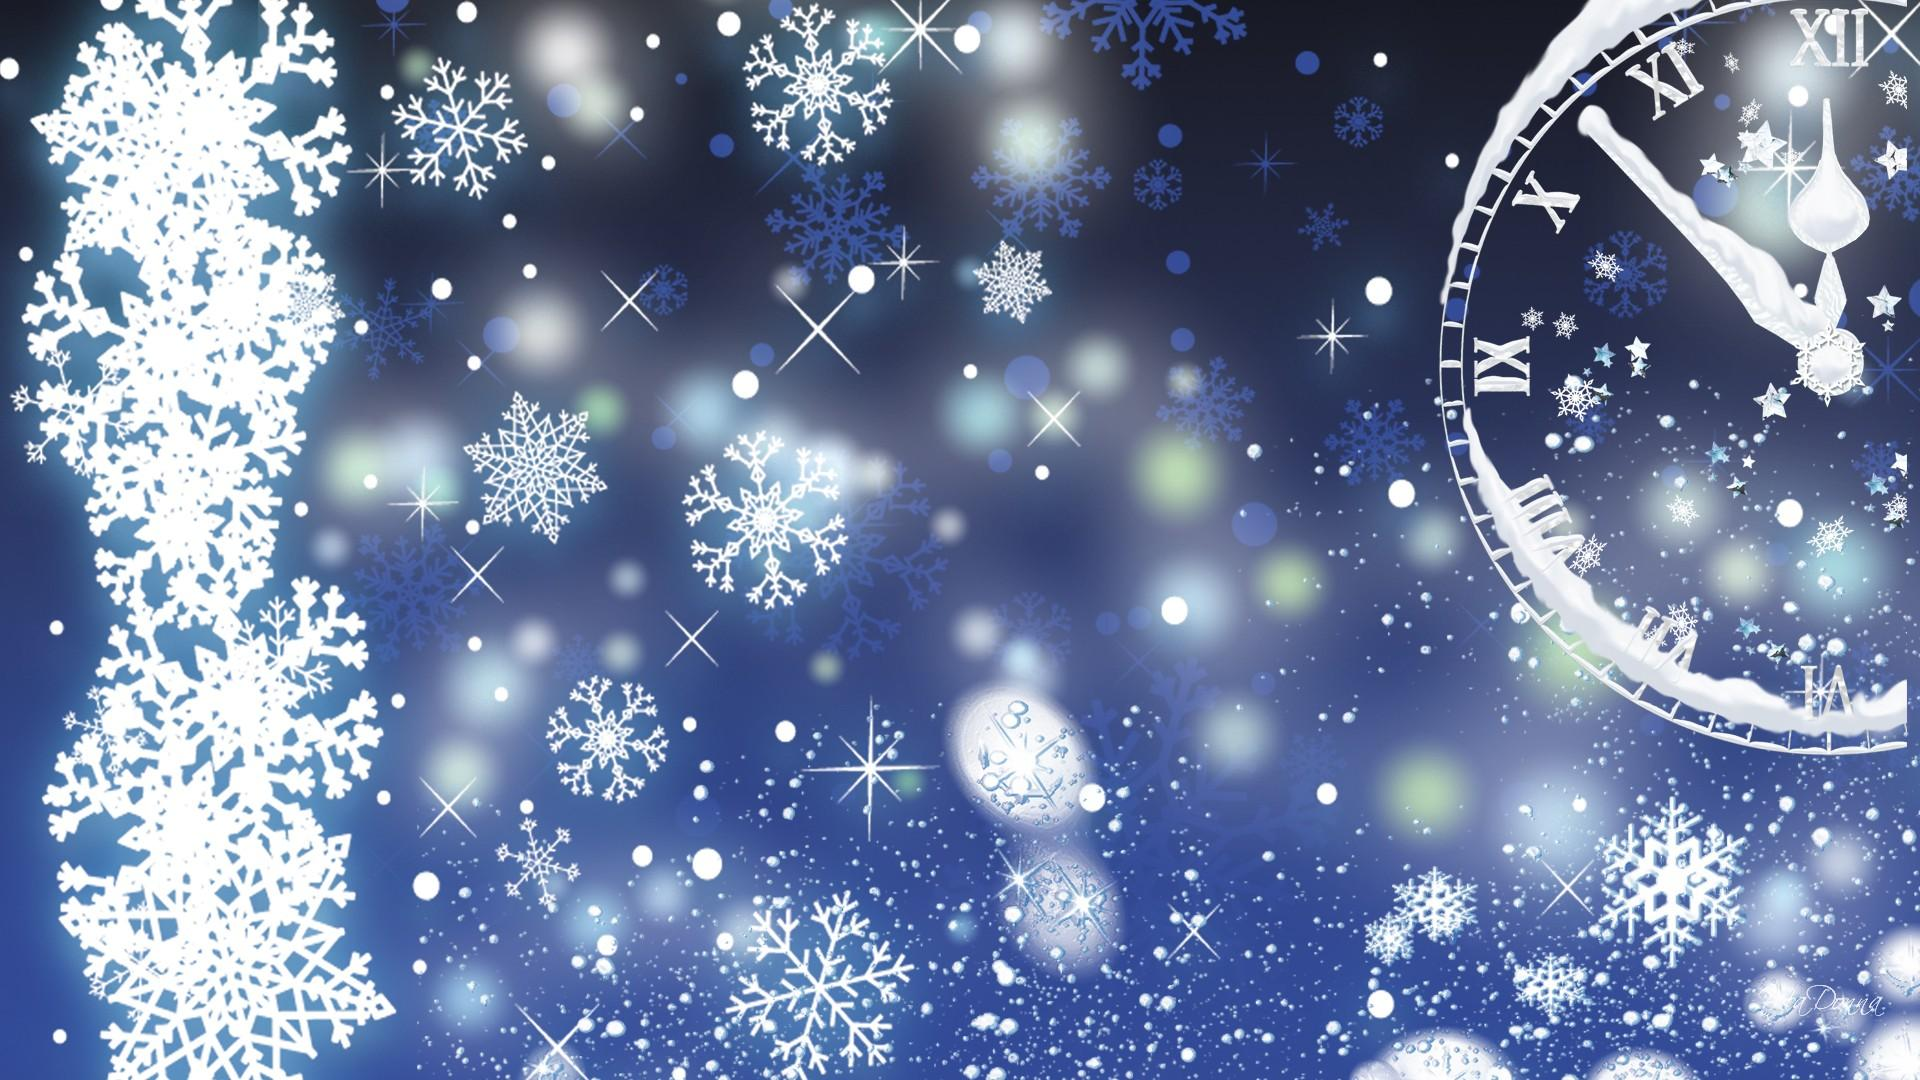 New Yearu0027s Eve Wallpapers - Top Free New Yearu0027s Eve Backgrounds